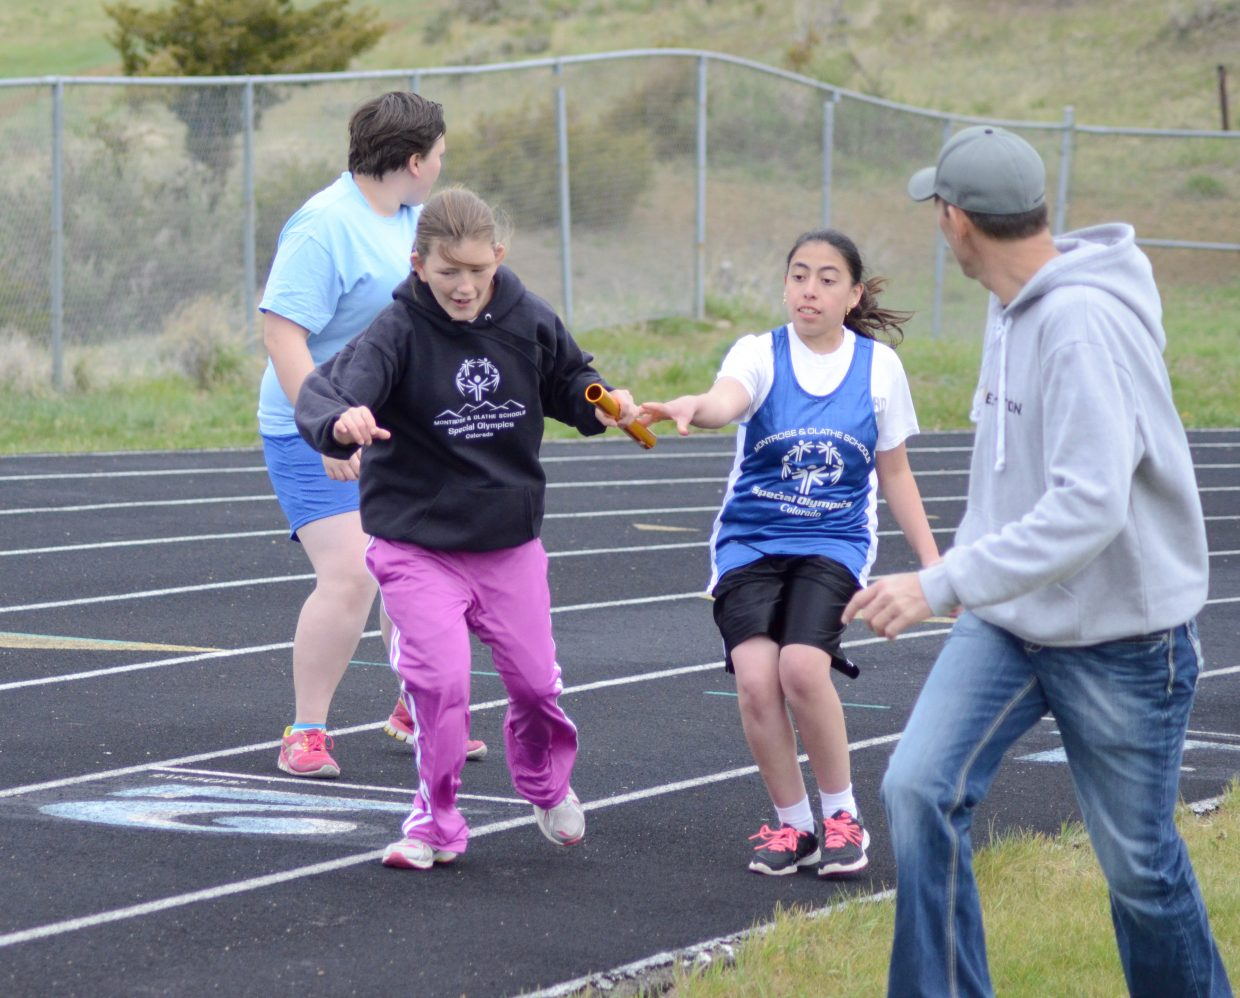 Carolina Jaramillo hands off the baton to teammate Clarissa Hardy in the four by 100-meter relay at the Western Area Summer Games Saturday.